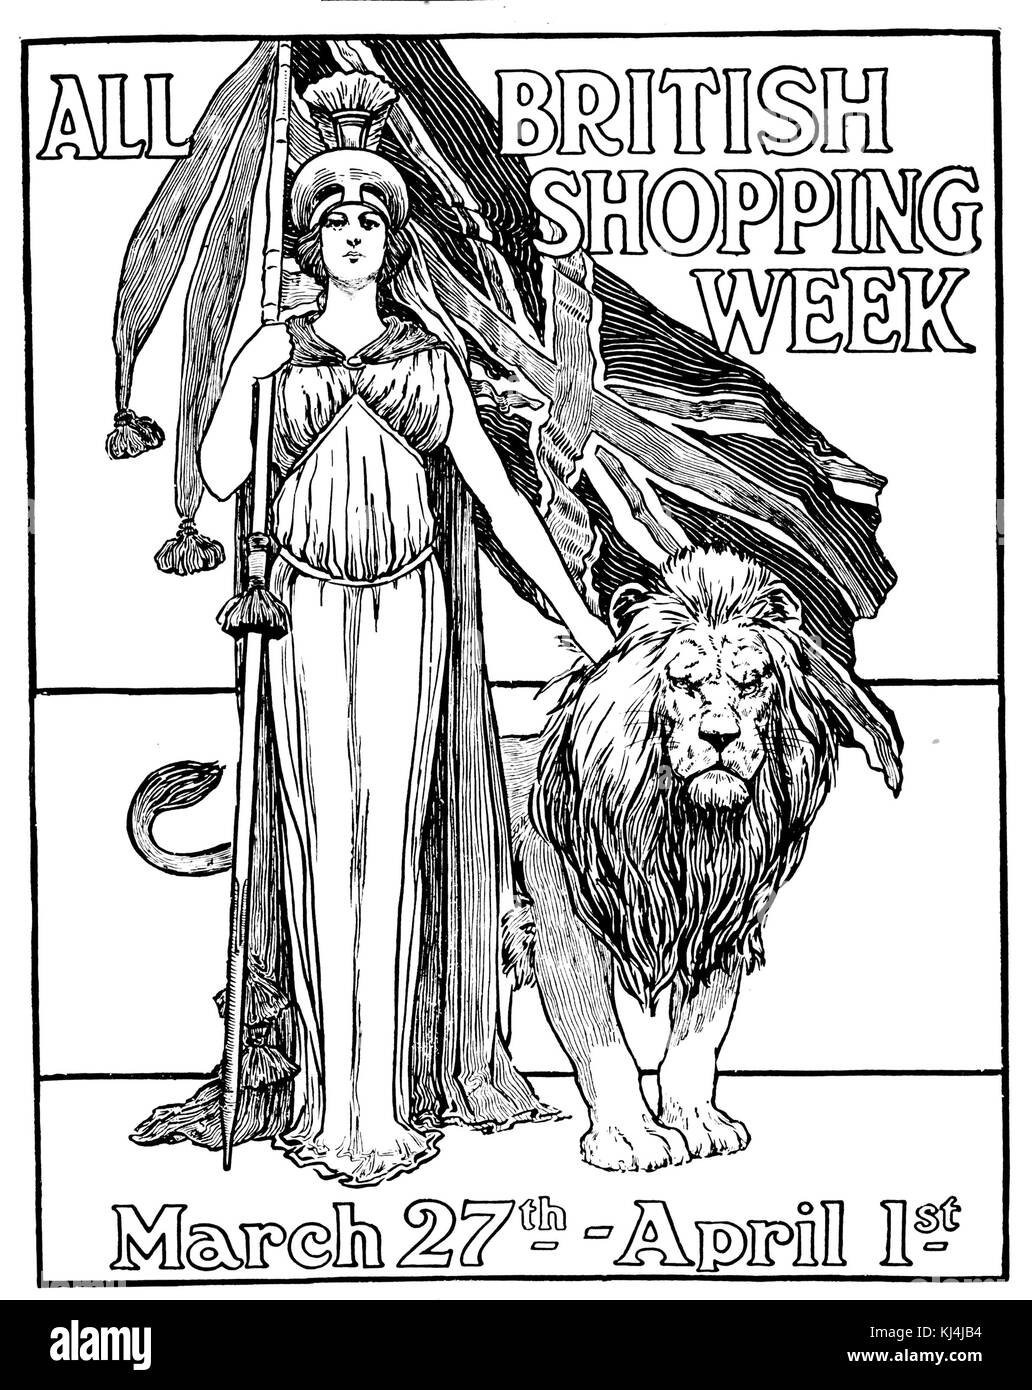 ALL BRITISH SHOPPING WEEK Magazine advert to promote home produced goods in 1911 - Stock Image